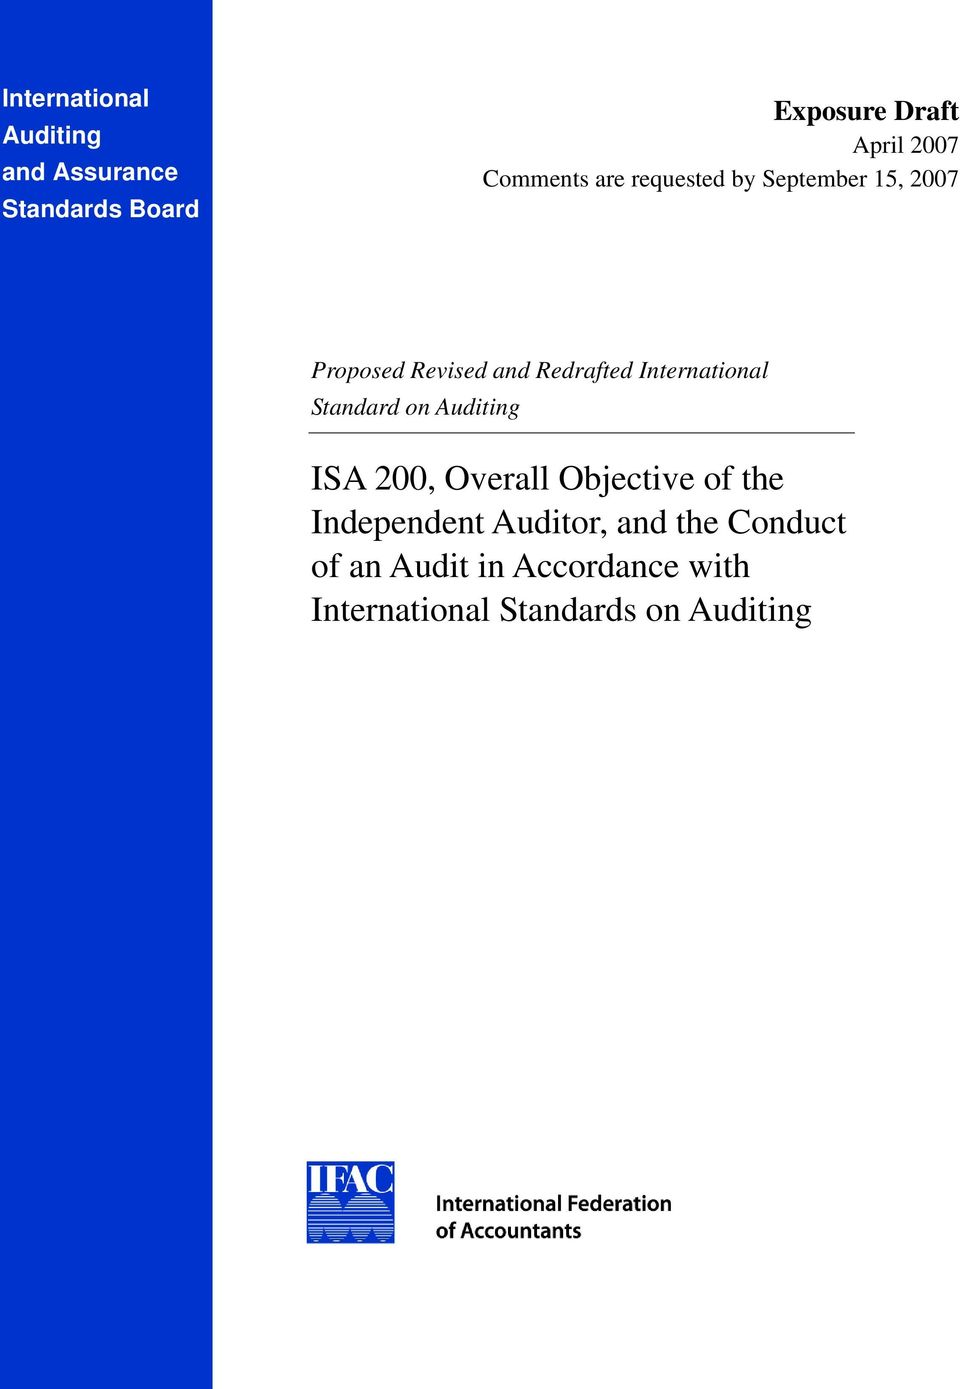 International Standard on Auditing ISA 200, Overall Objective of the Independent